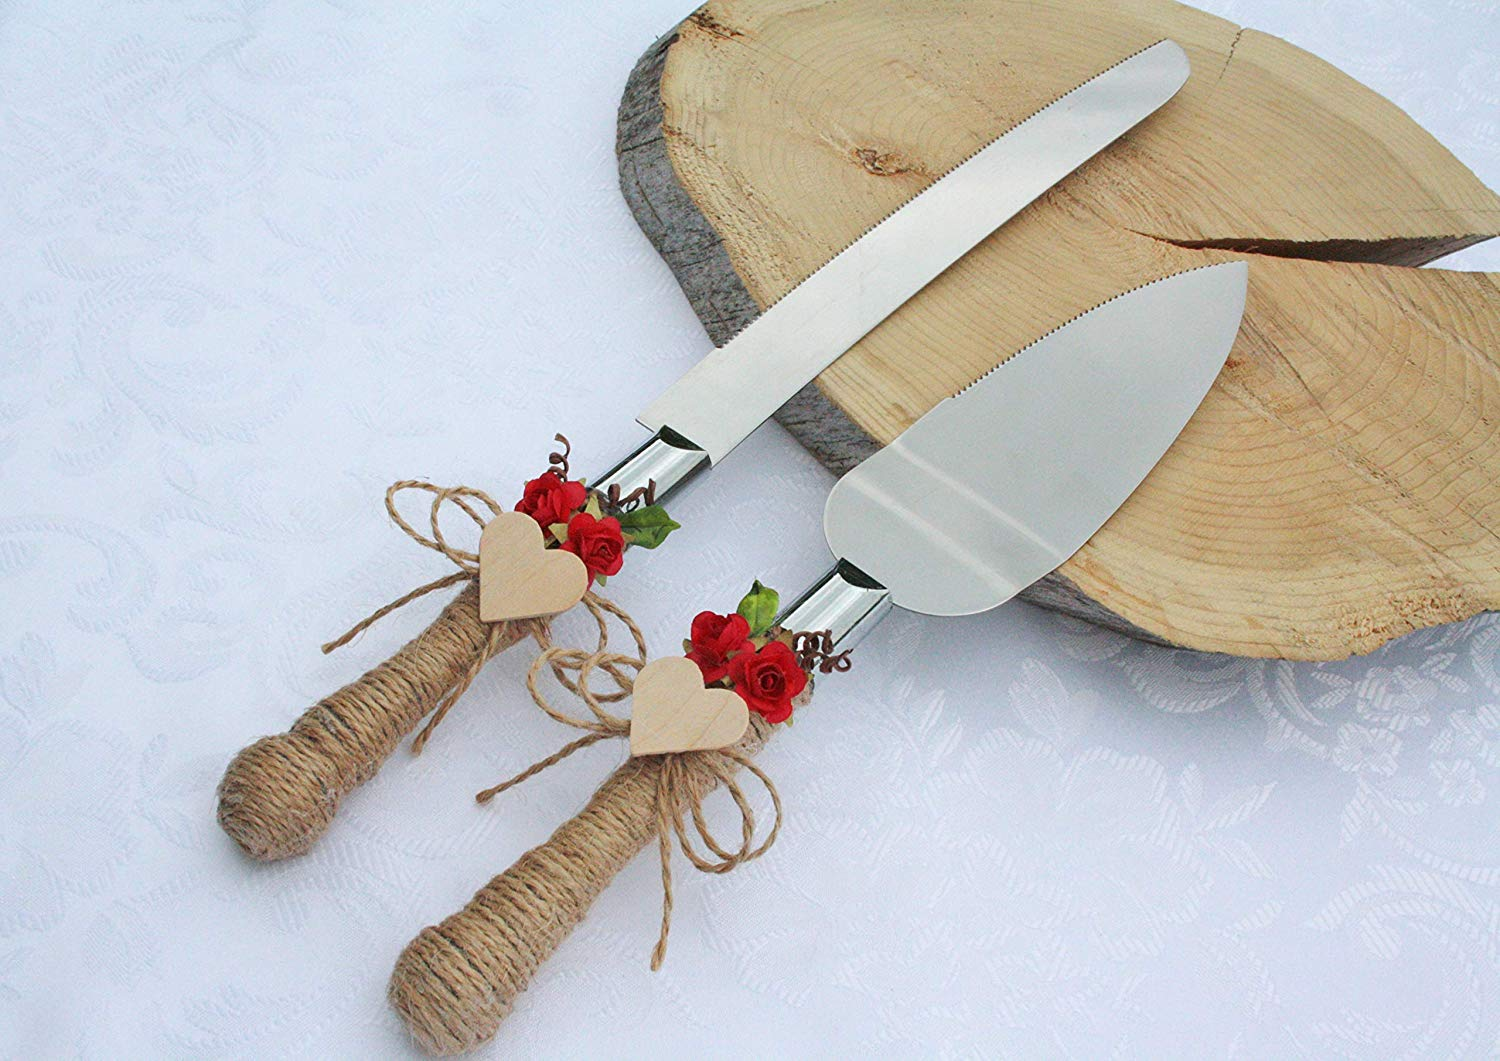 Rustic chic wedding cake cutter, red flowers cake cutter, Wedding cake server set, Country wedding cake cutting, Cake server & cake knife set